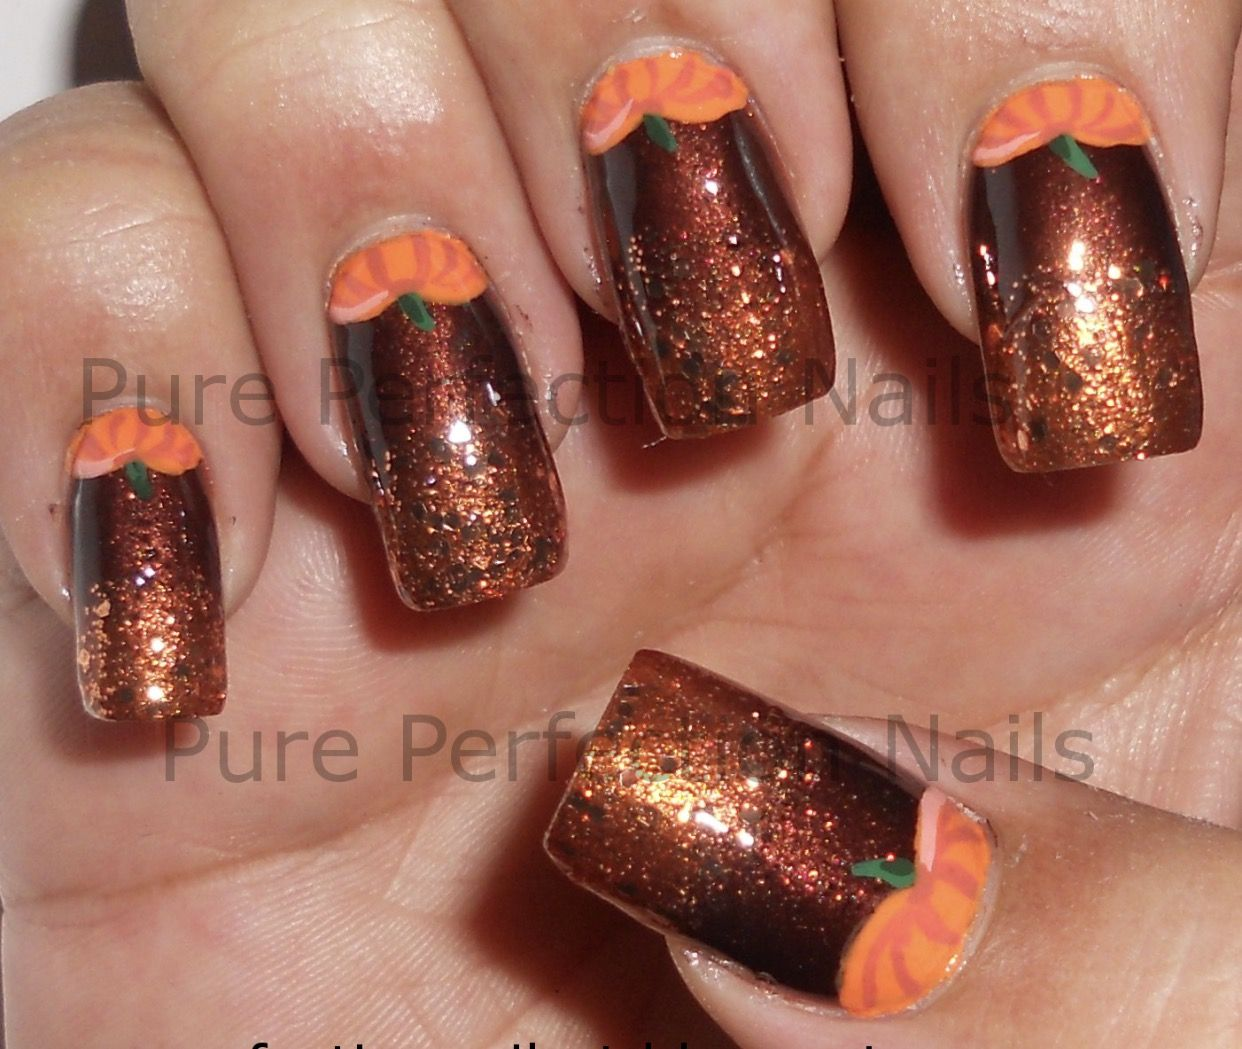 Pin by Kris Harrison-Mohart on Nail art designs | Pinterest | Fall ...